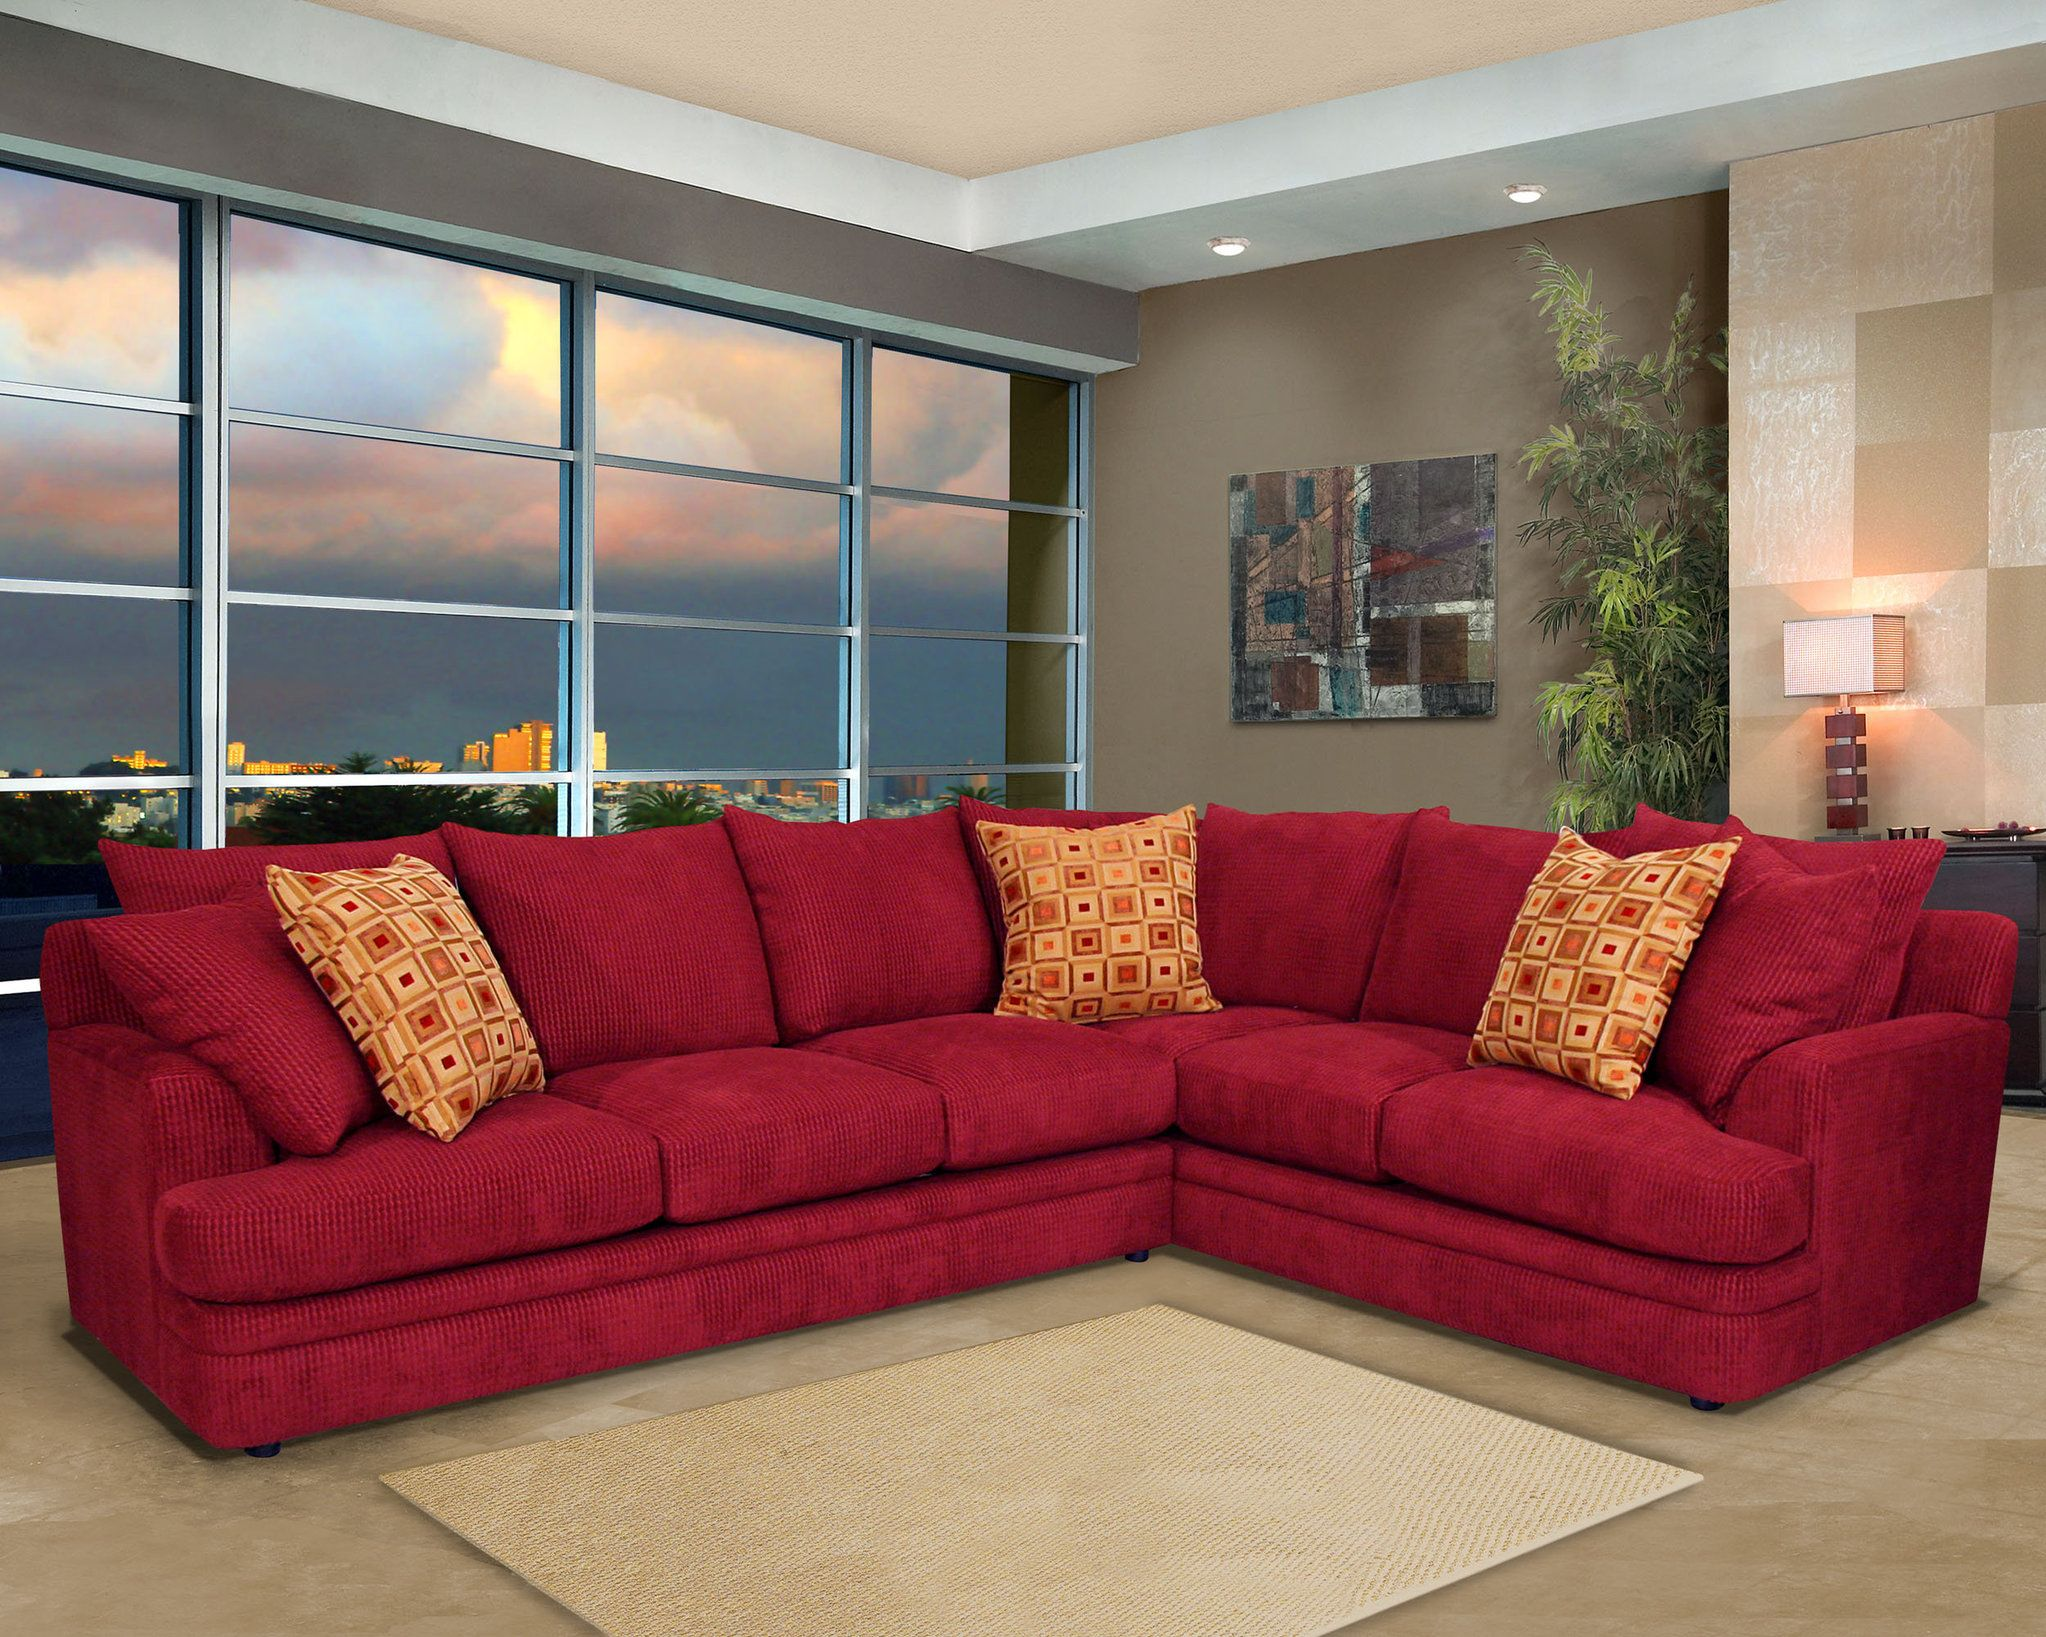 red corduroy couch with sleeper